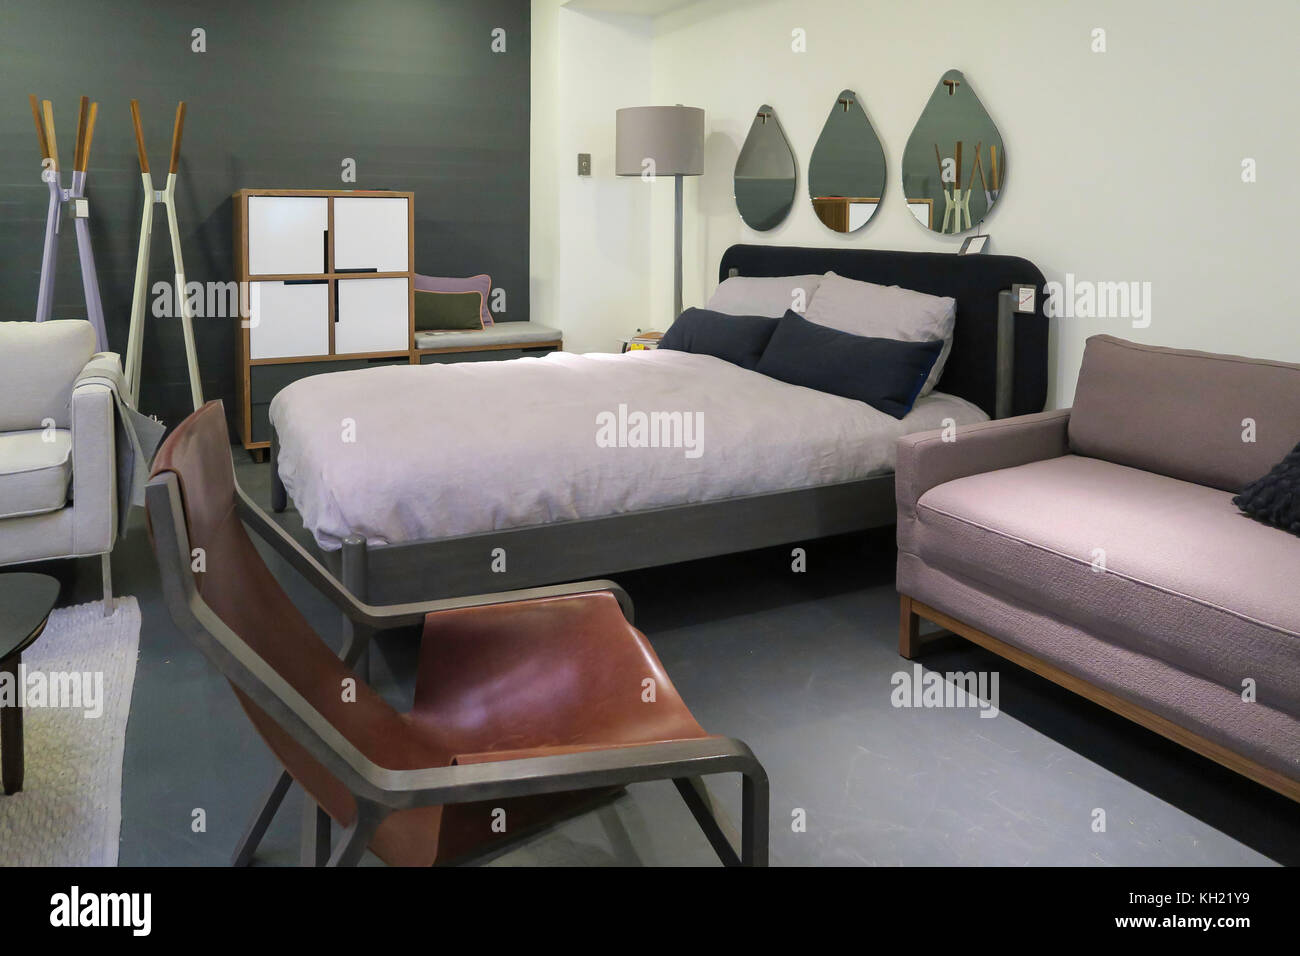 Furniture Shopping Sale Stock Photos Furniture Shopping Sale Stock Images Alamy